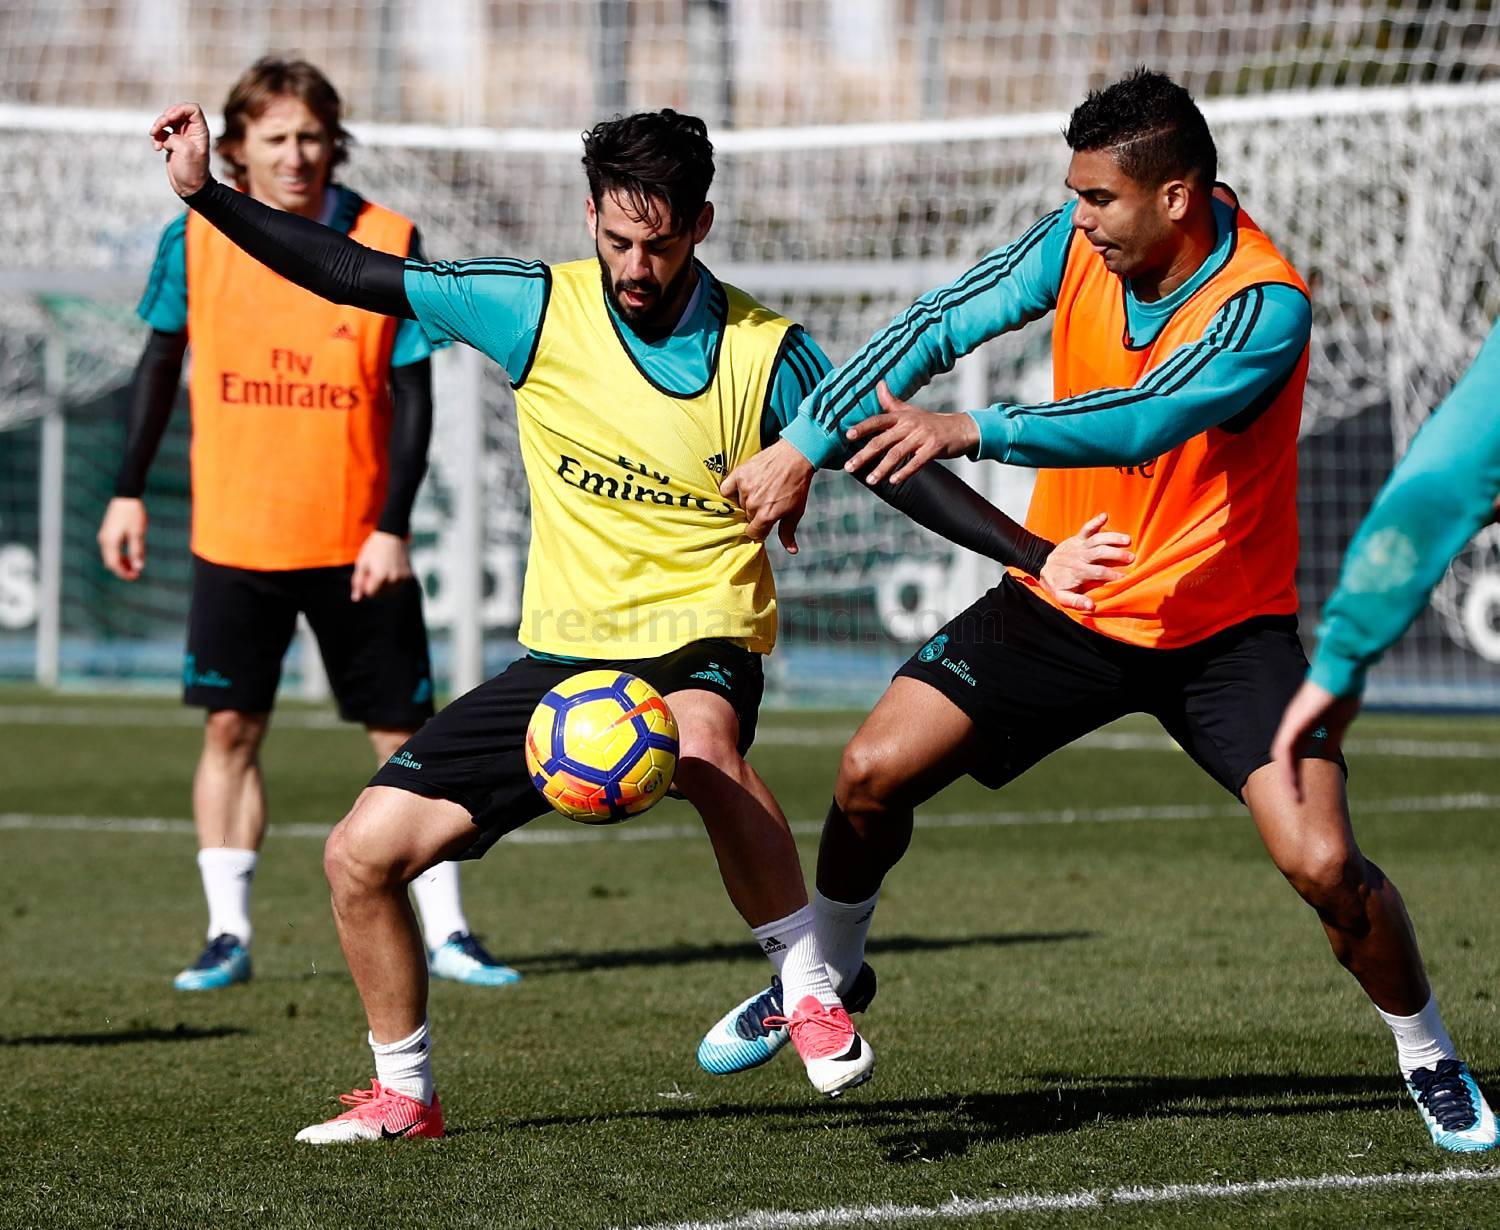 Real Madrid - Entrenamiento del Real Madrid - 31-01-2018